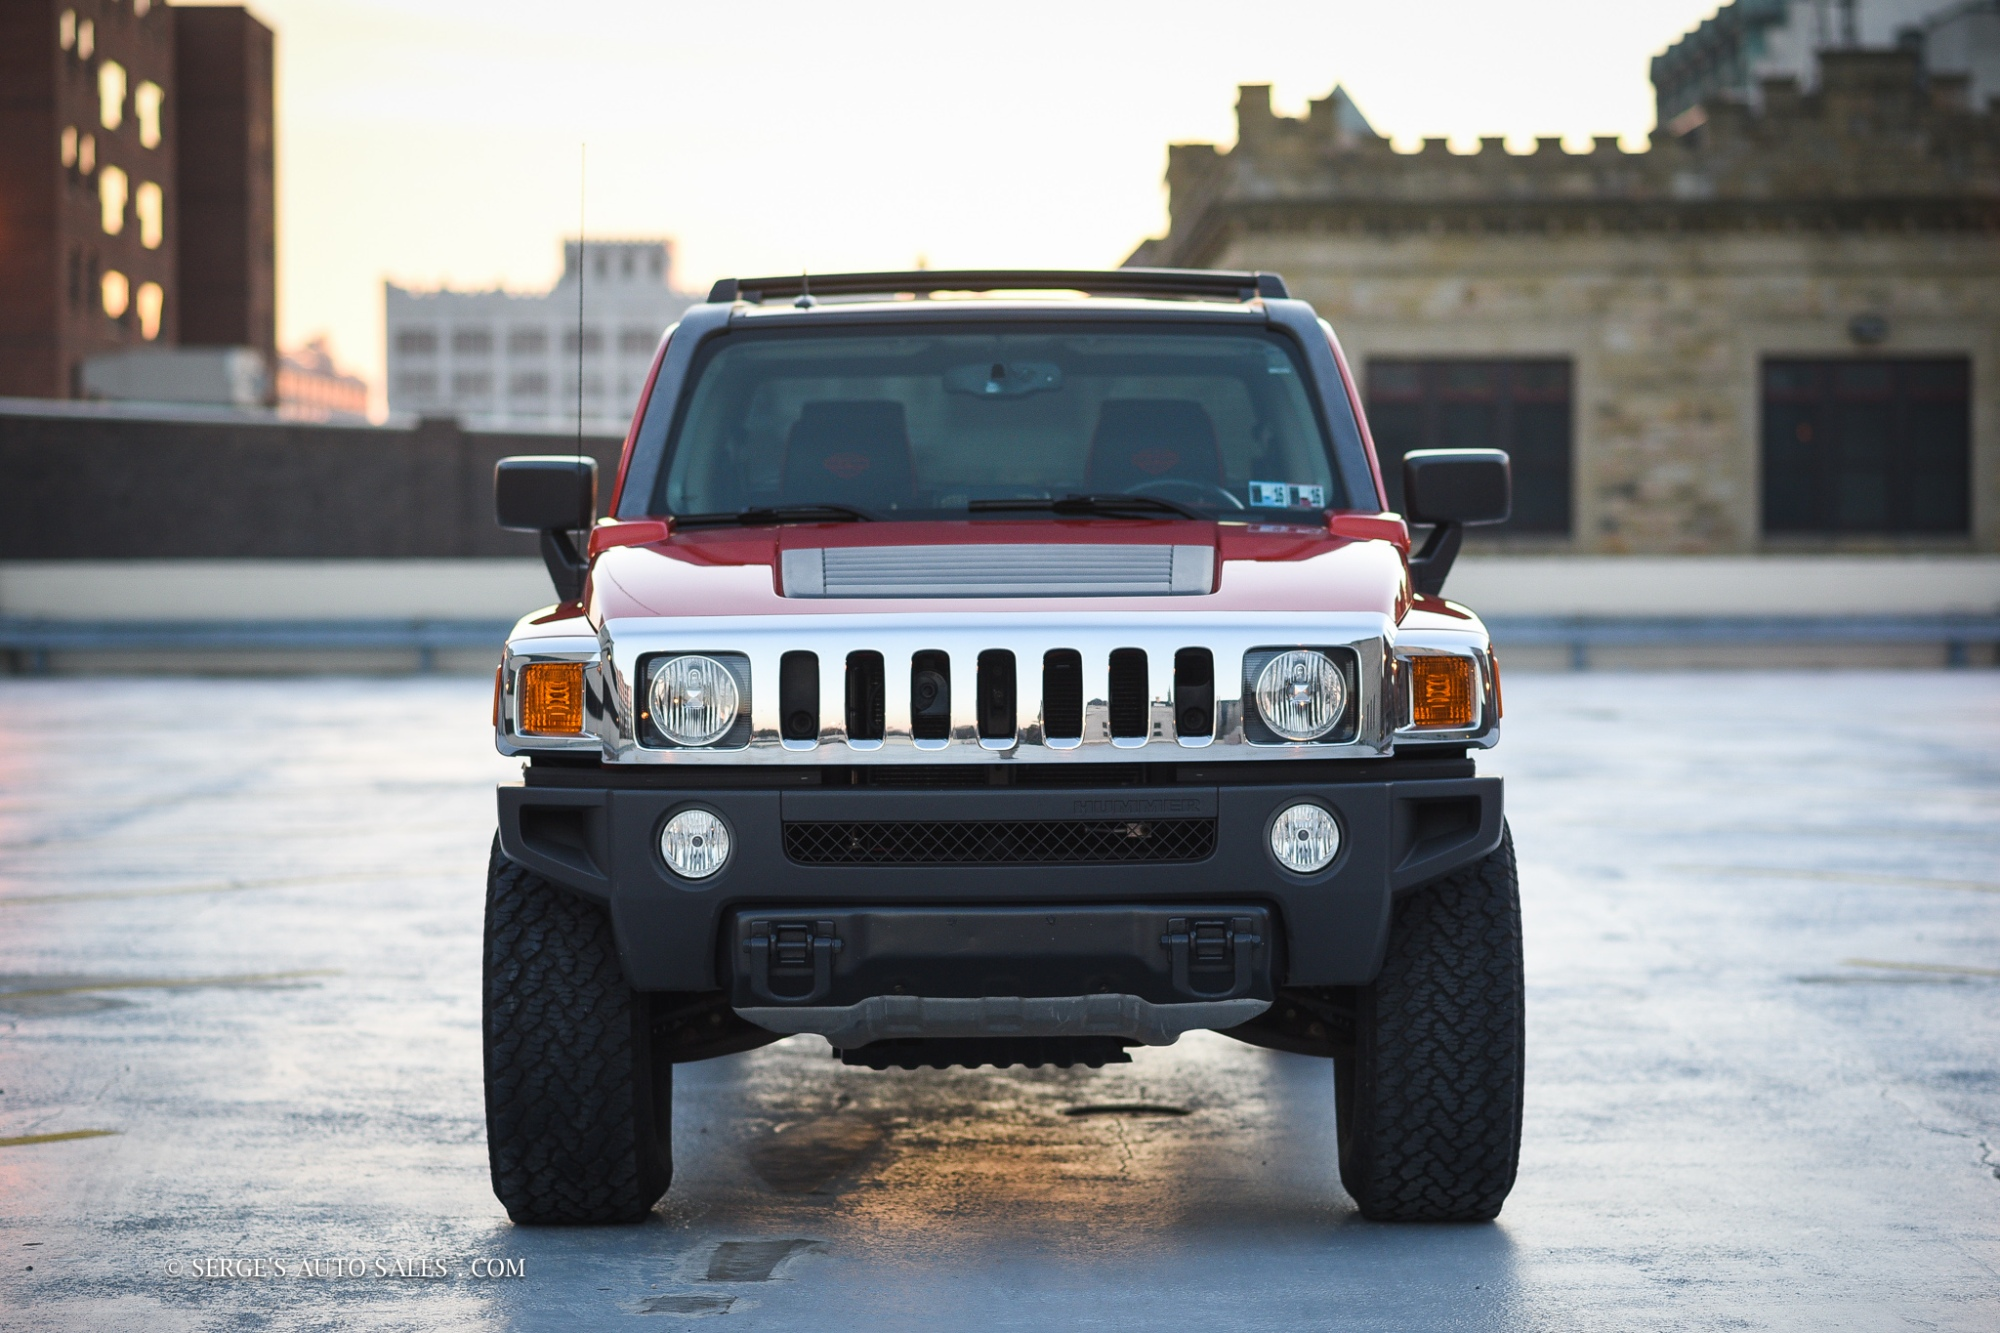 2009 Hummer H3T SOLD – Serges Auto Sales of northeast pa